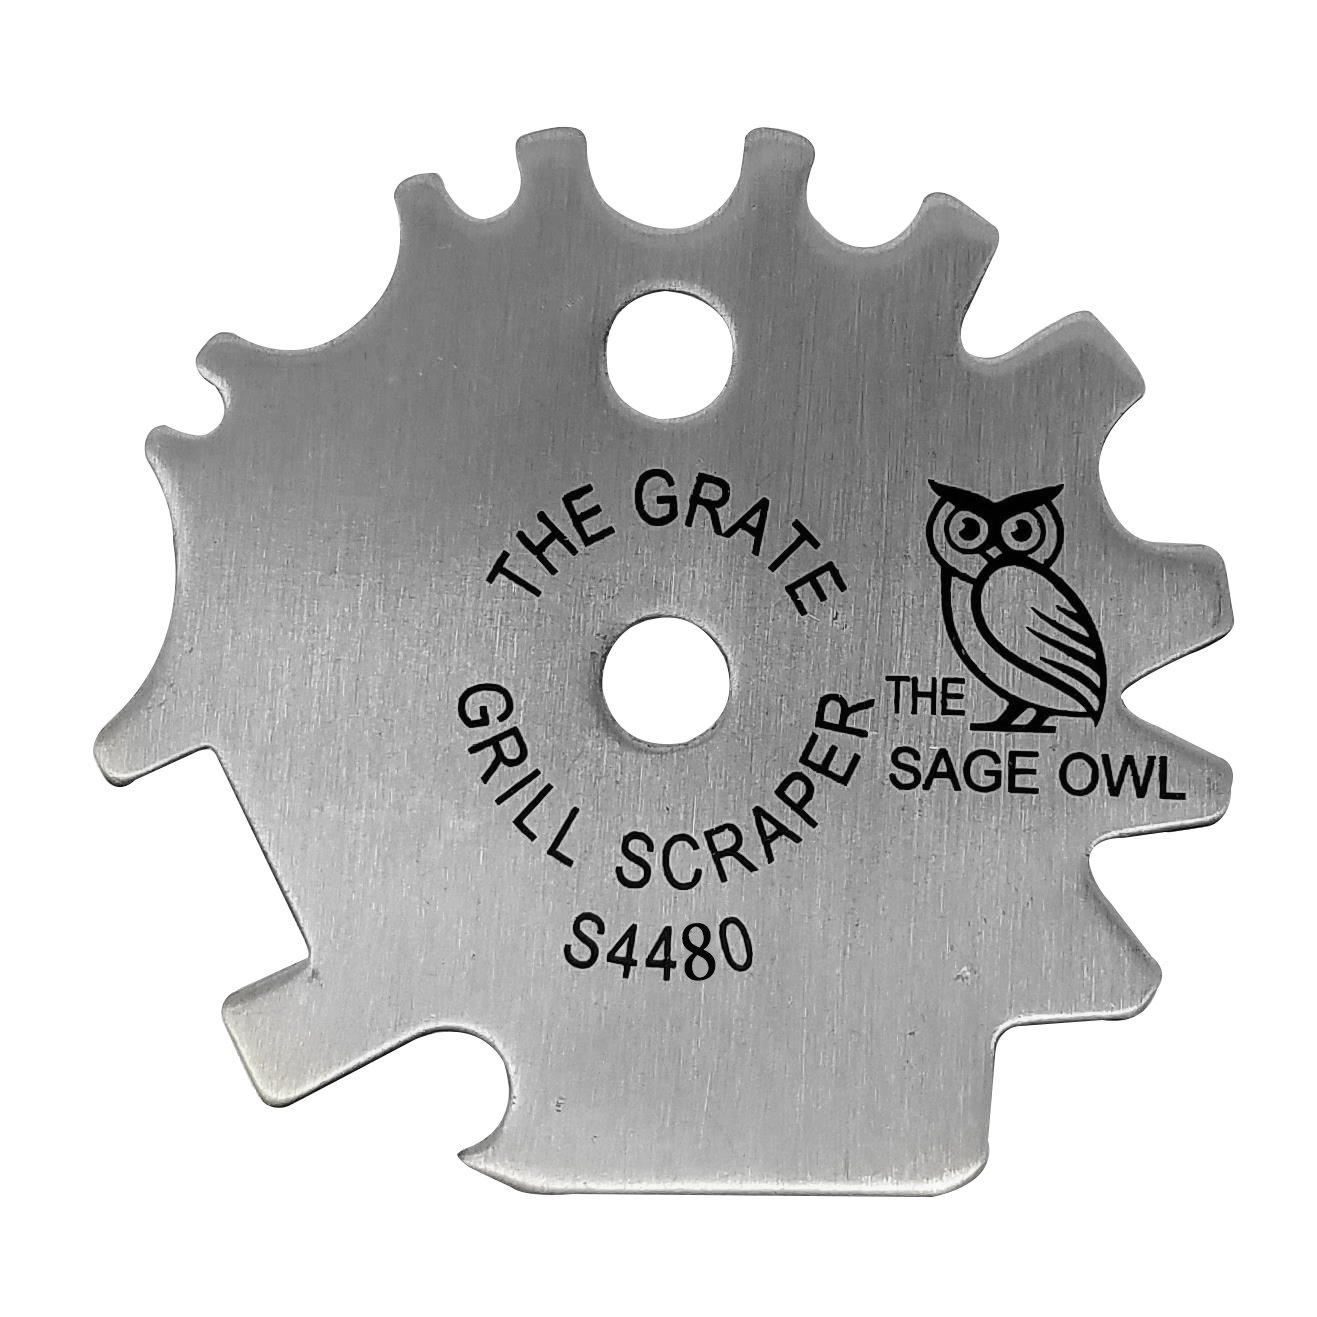 The Grate Grill Scraper - Stainless Steel Barbecue Tool - Safe, Effective Cleaner of Grills (Charcoal, Gas, Electric, Ceramic, Infrared, Pellet), Smokers and Indoor Ovens by The Sage Owl S4420